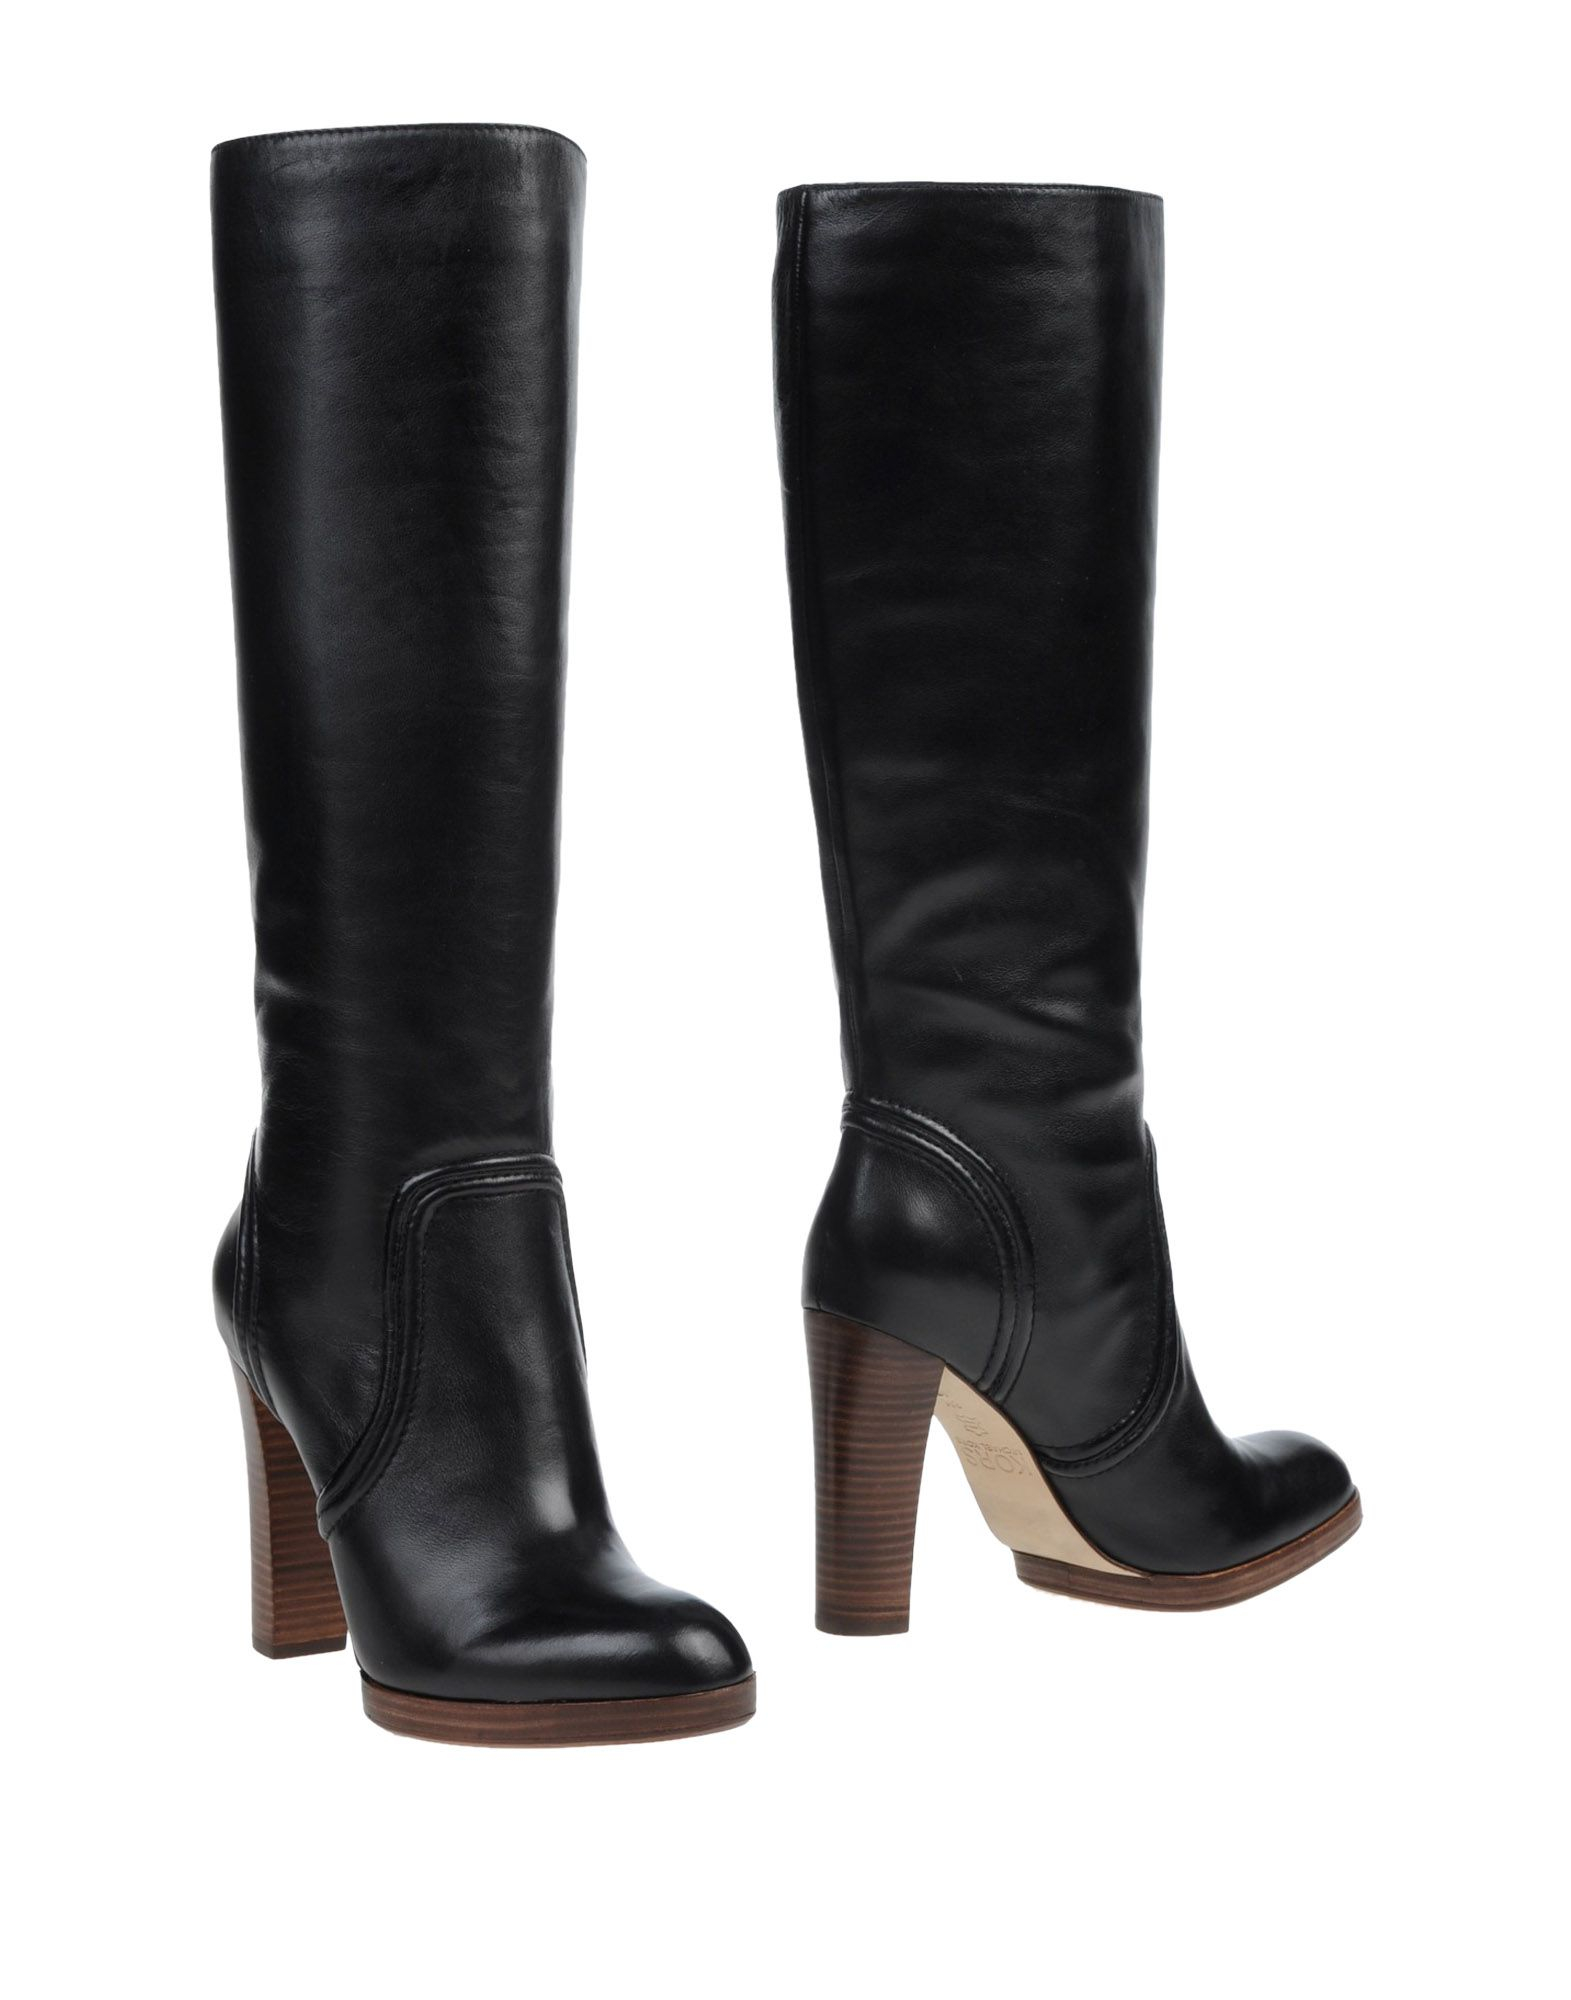 kors by michael kors boots in black lyst